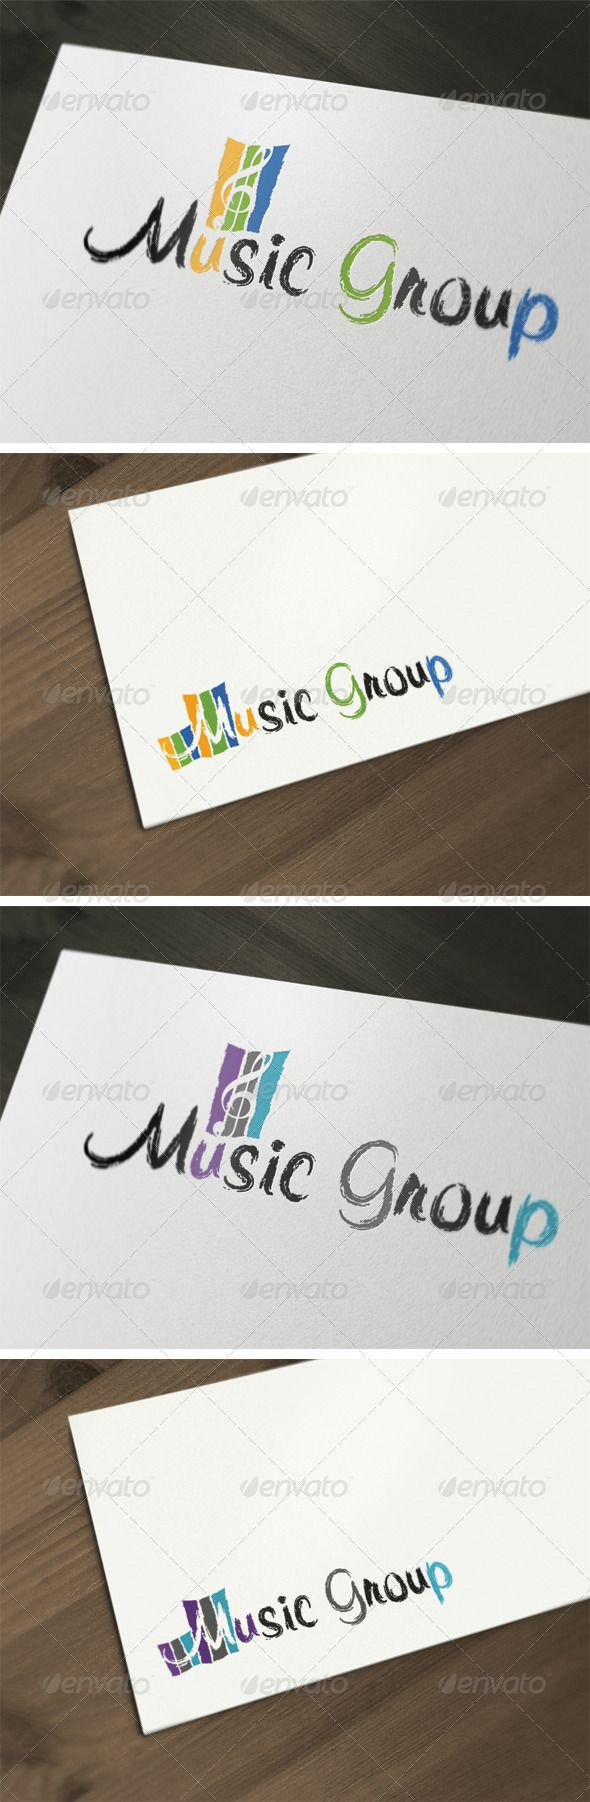 Music Group   Logo Design Template Vector #logotype Download it here: http://graphicriver.net/item/music-group-logo-template/1669952?s_rank=282?ref=nesto